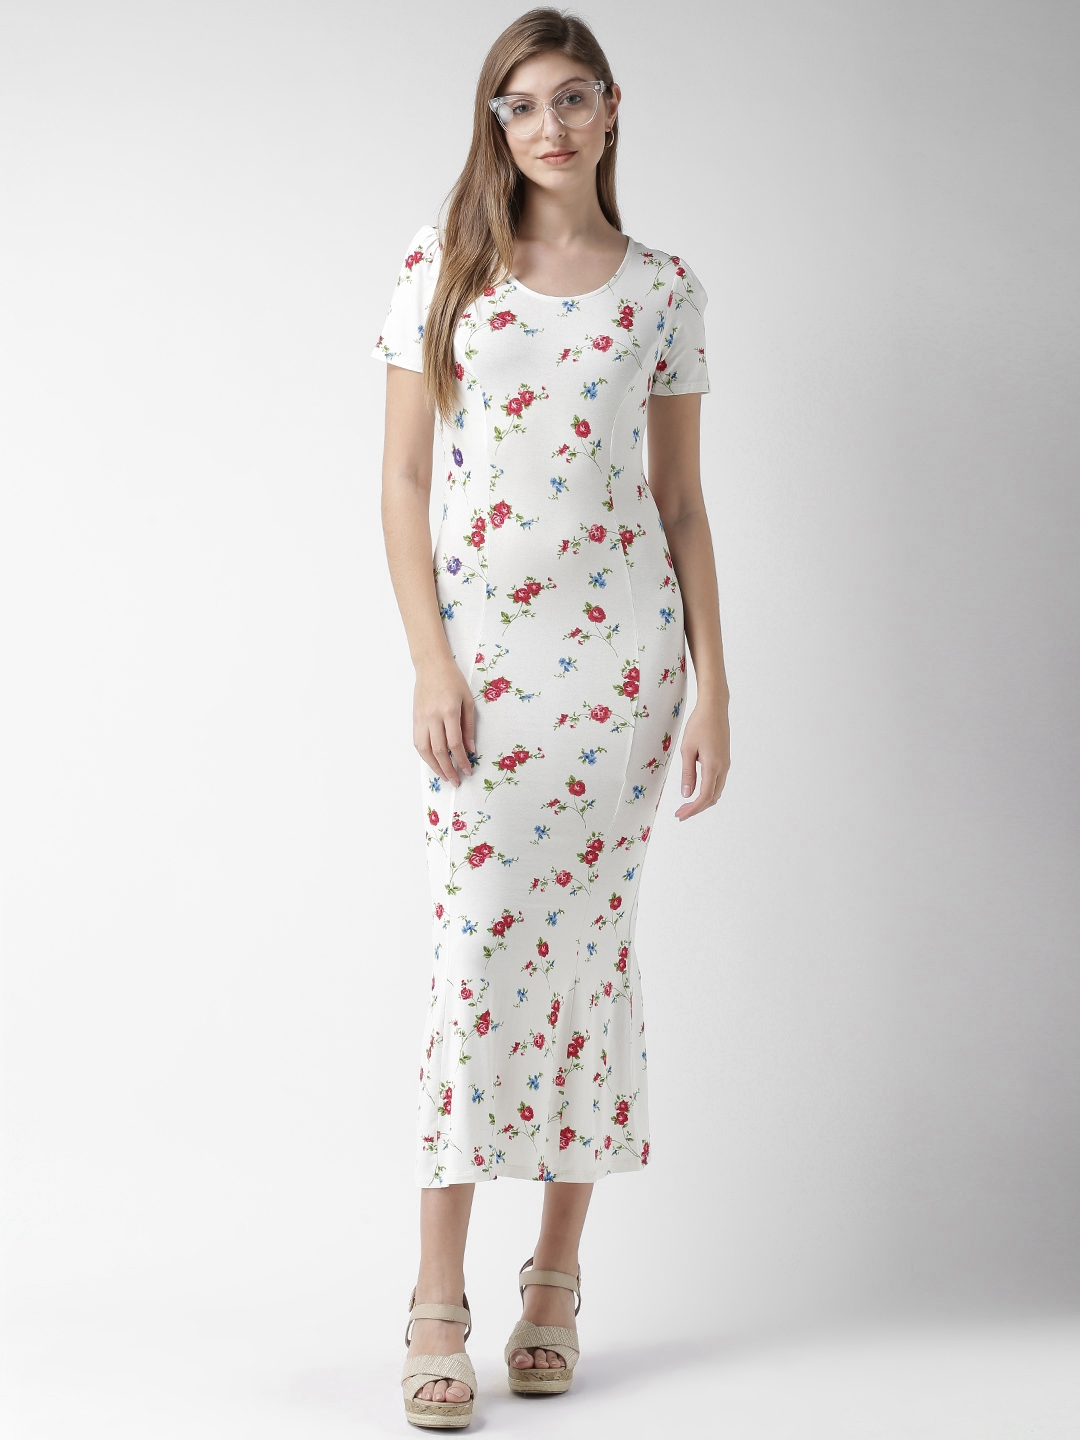 a4c625a6b375 Buy FOREVER 21 Women White   Red Floral Printed Maxi Dress - Dresses ...